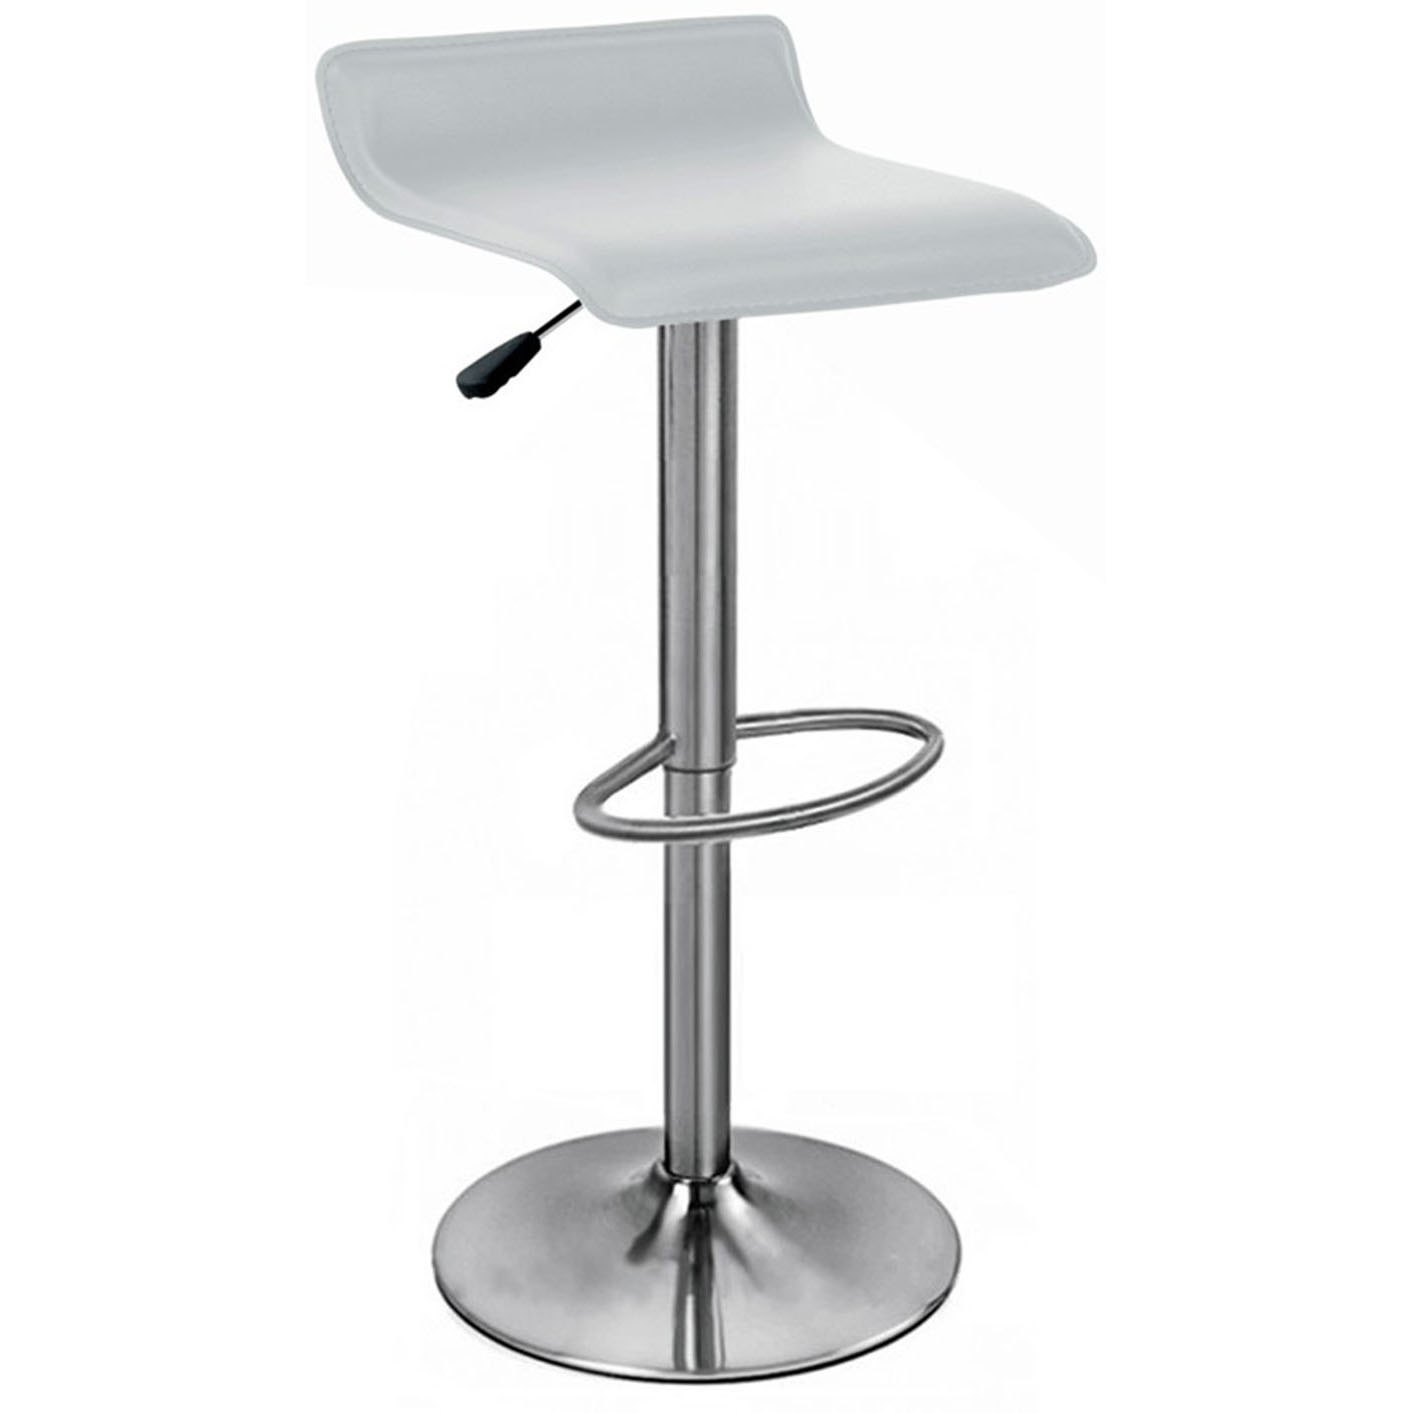 Baceno Brushed Bar Stool - White Product Image